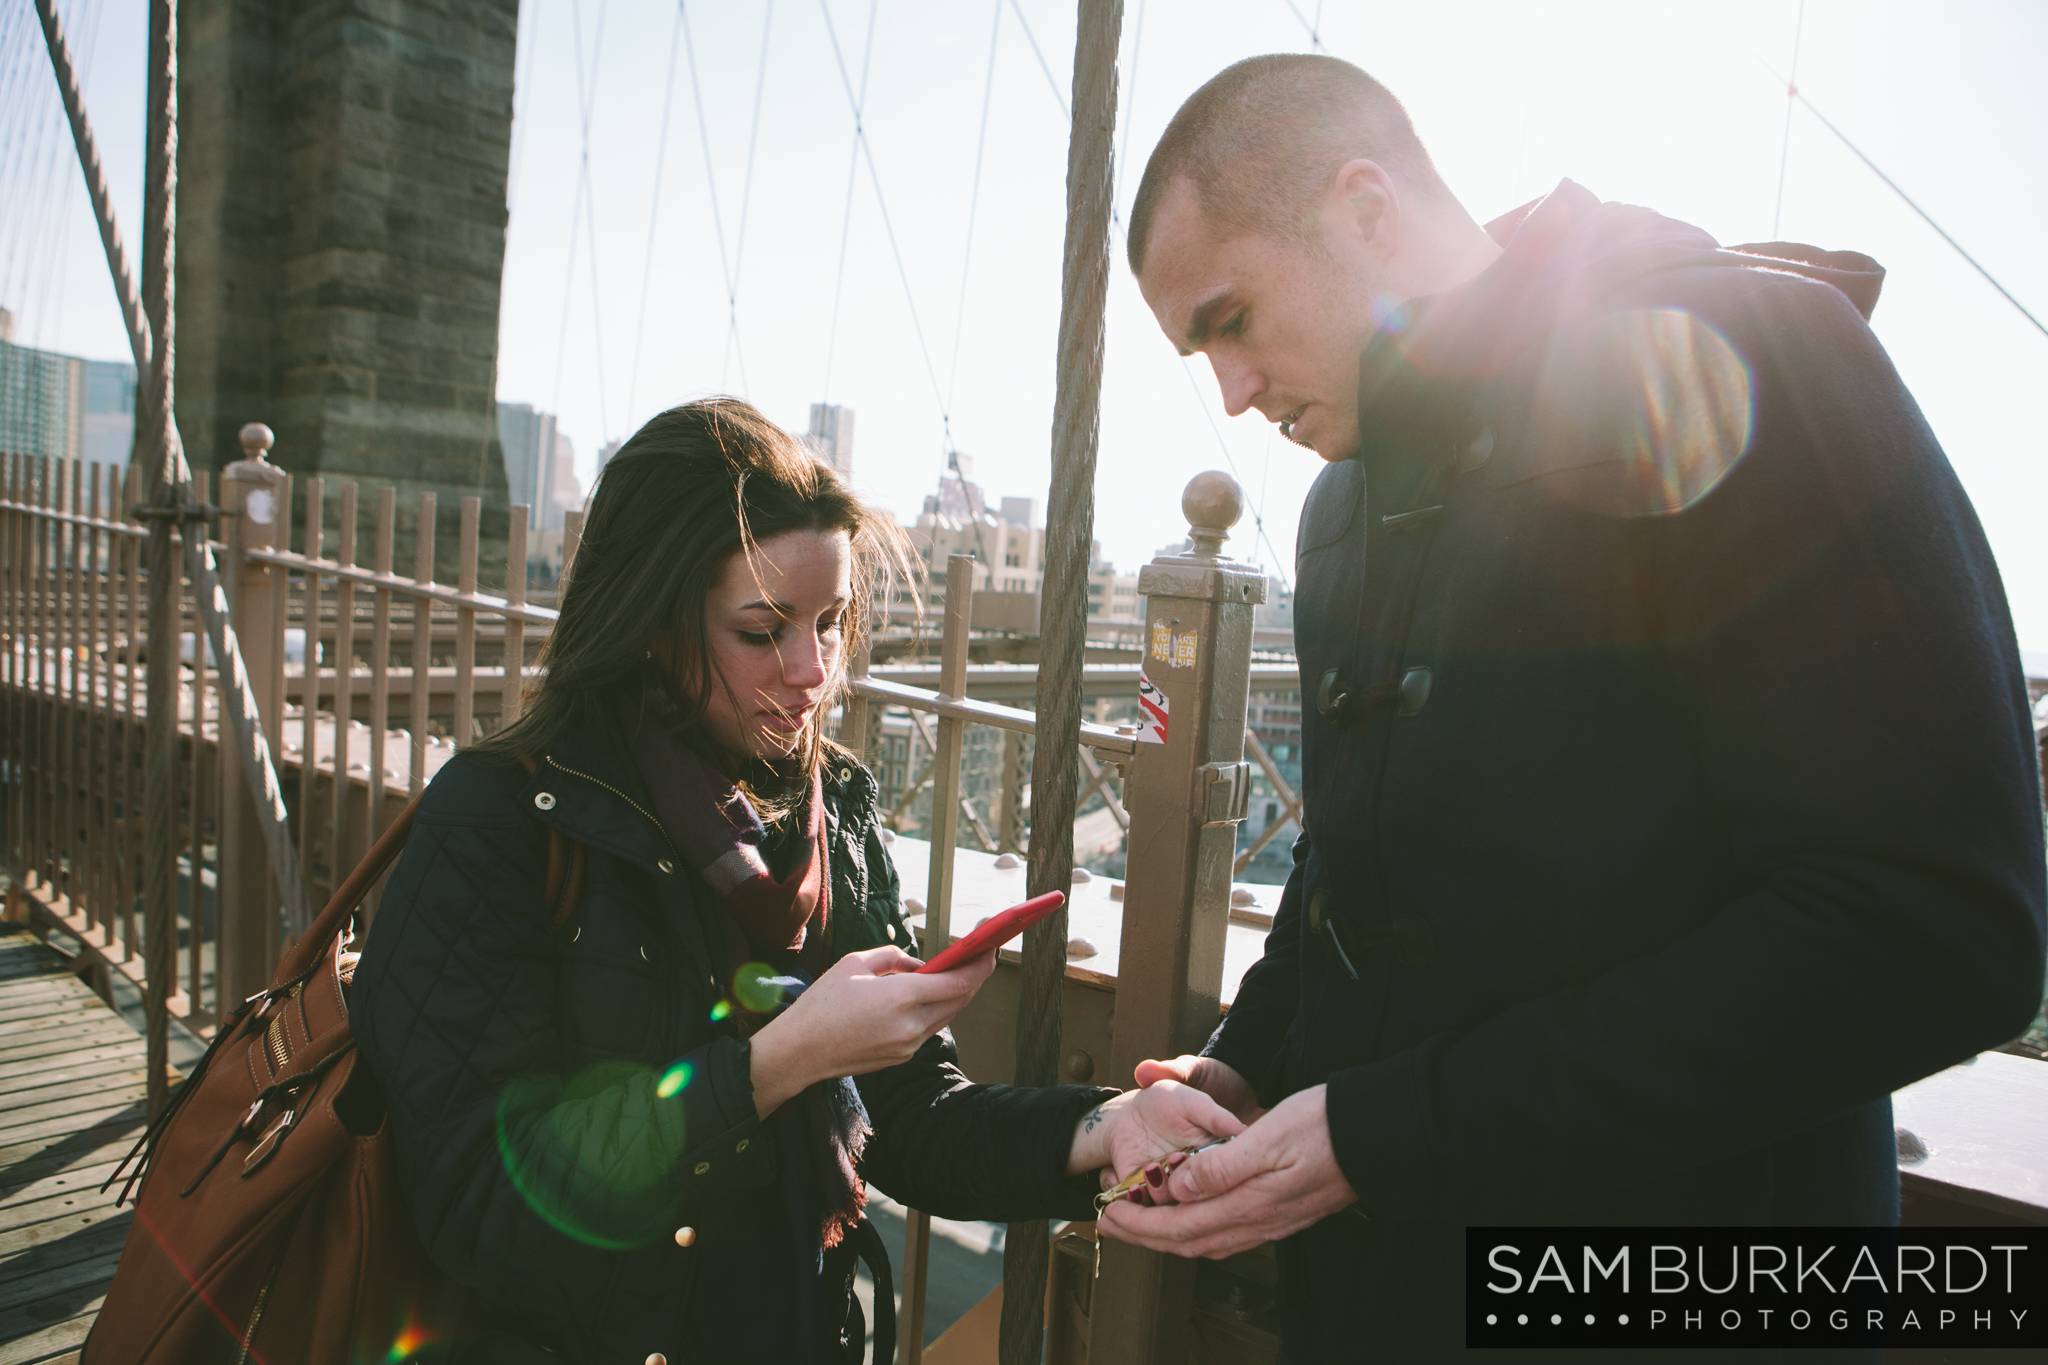 samburkardt_brooklyn_bridge_new_york_engagement_proposal_skyline_0021.jpg